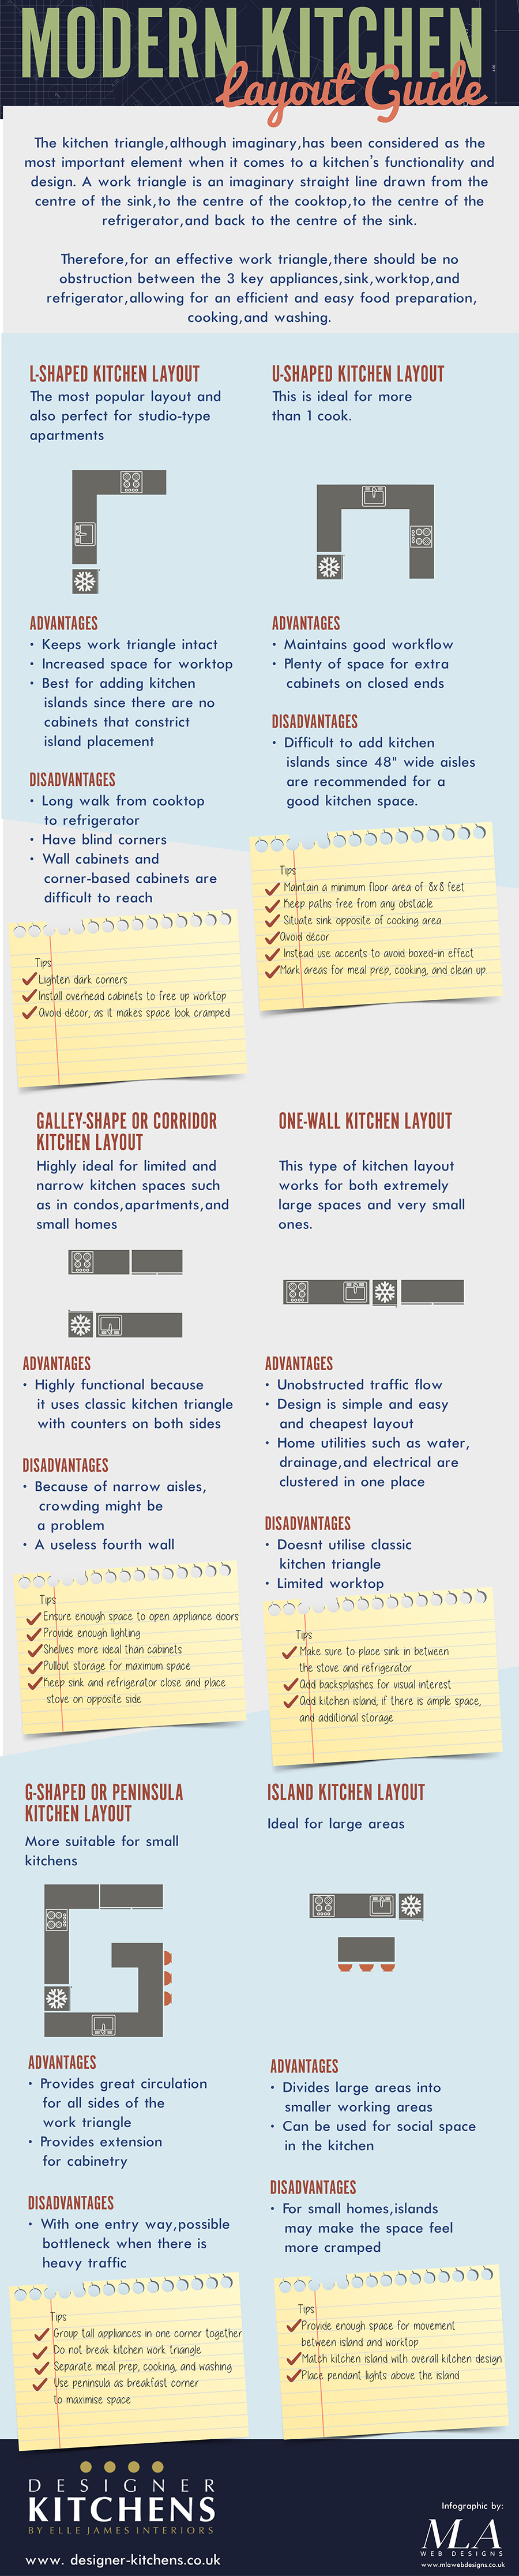 Modern Kitchen Layout Guide [Infographic] | Designer Kitchens